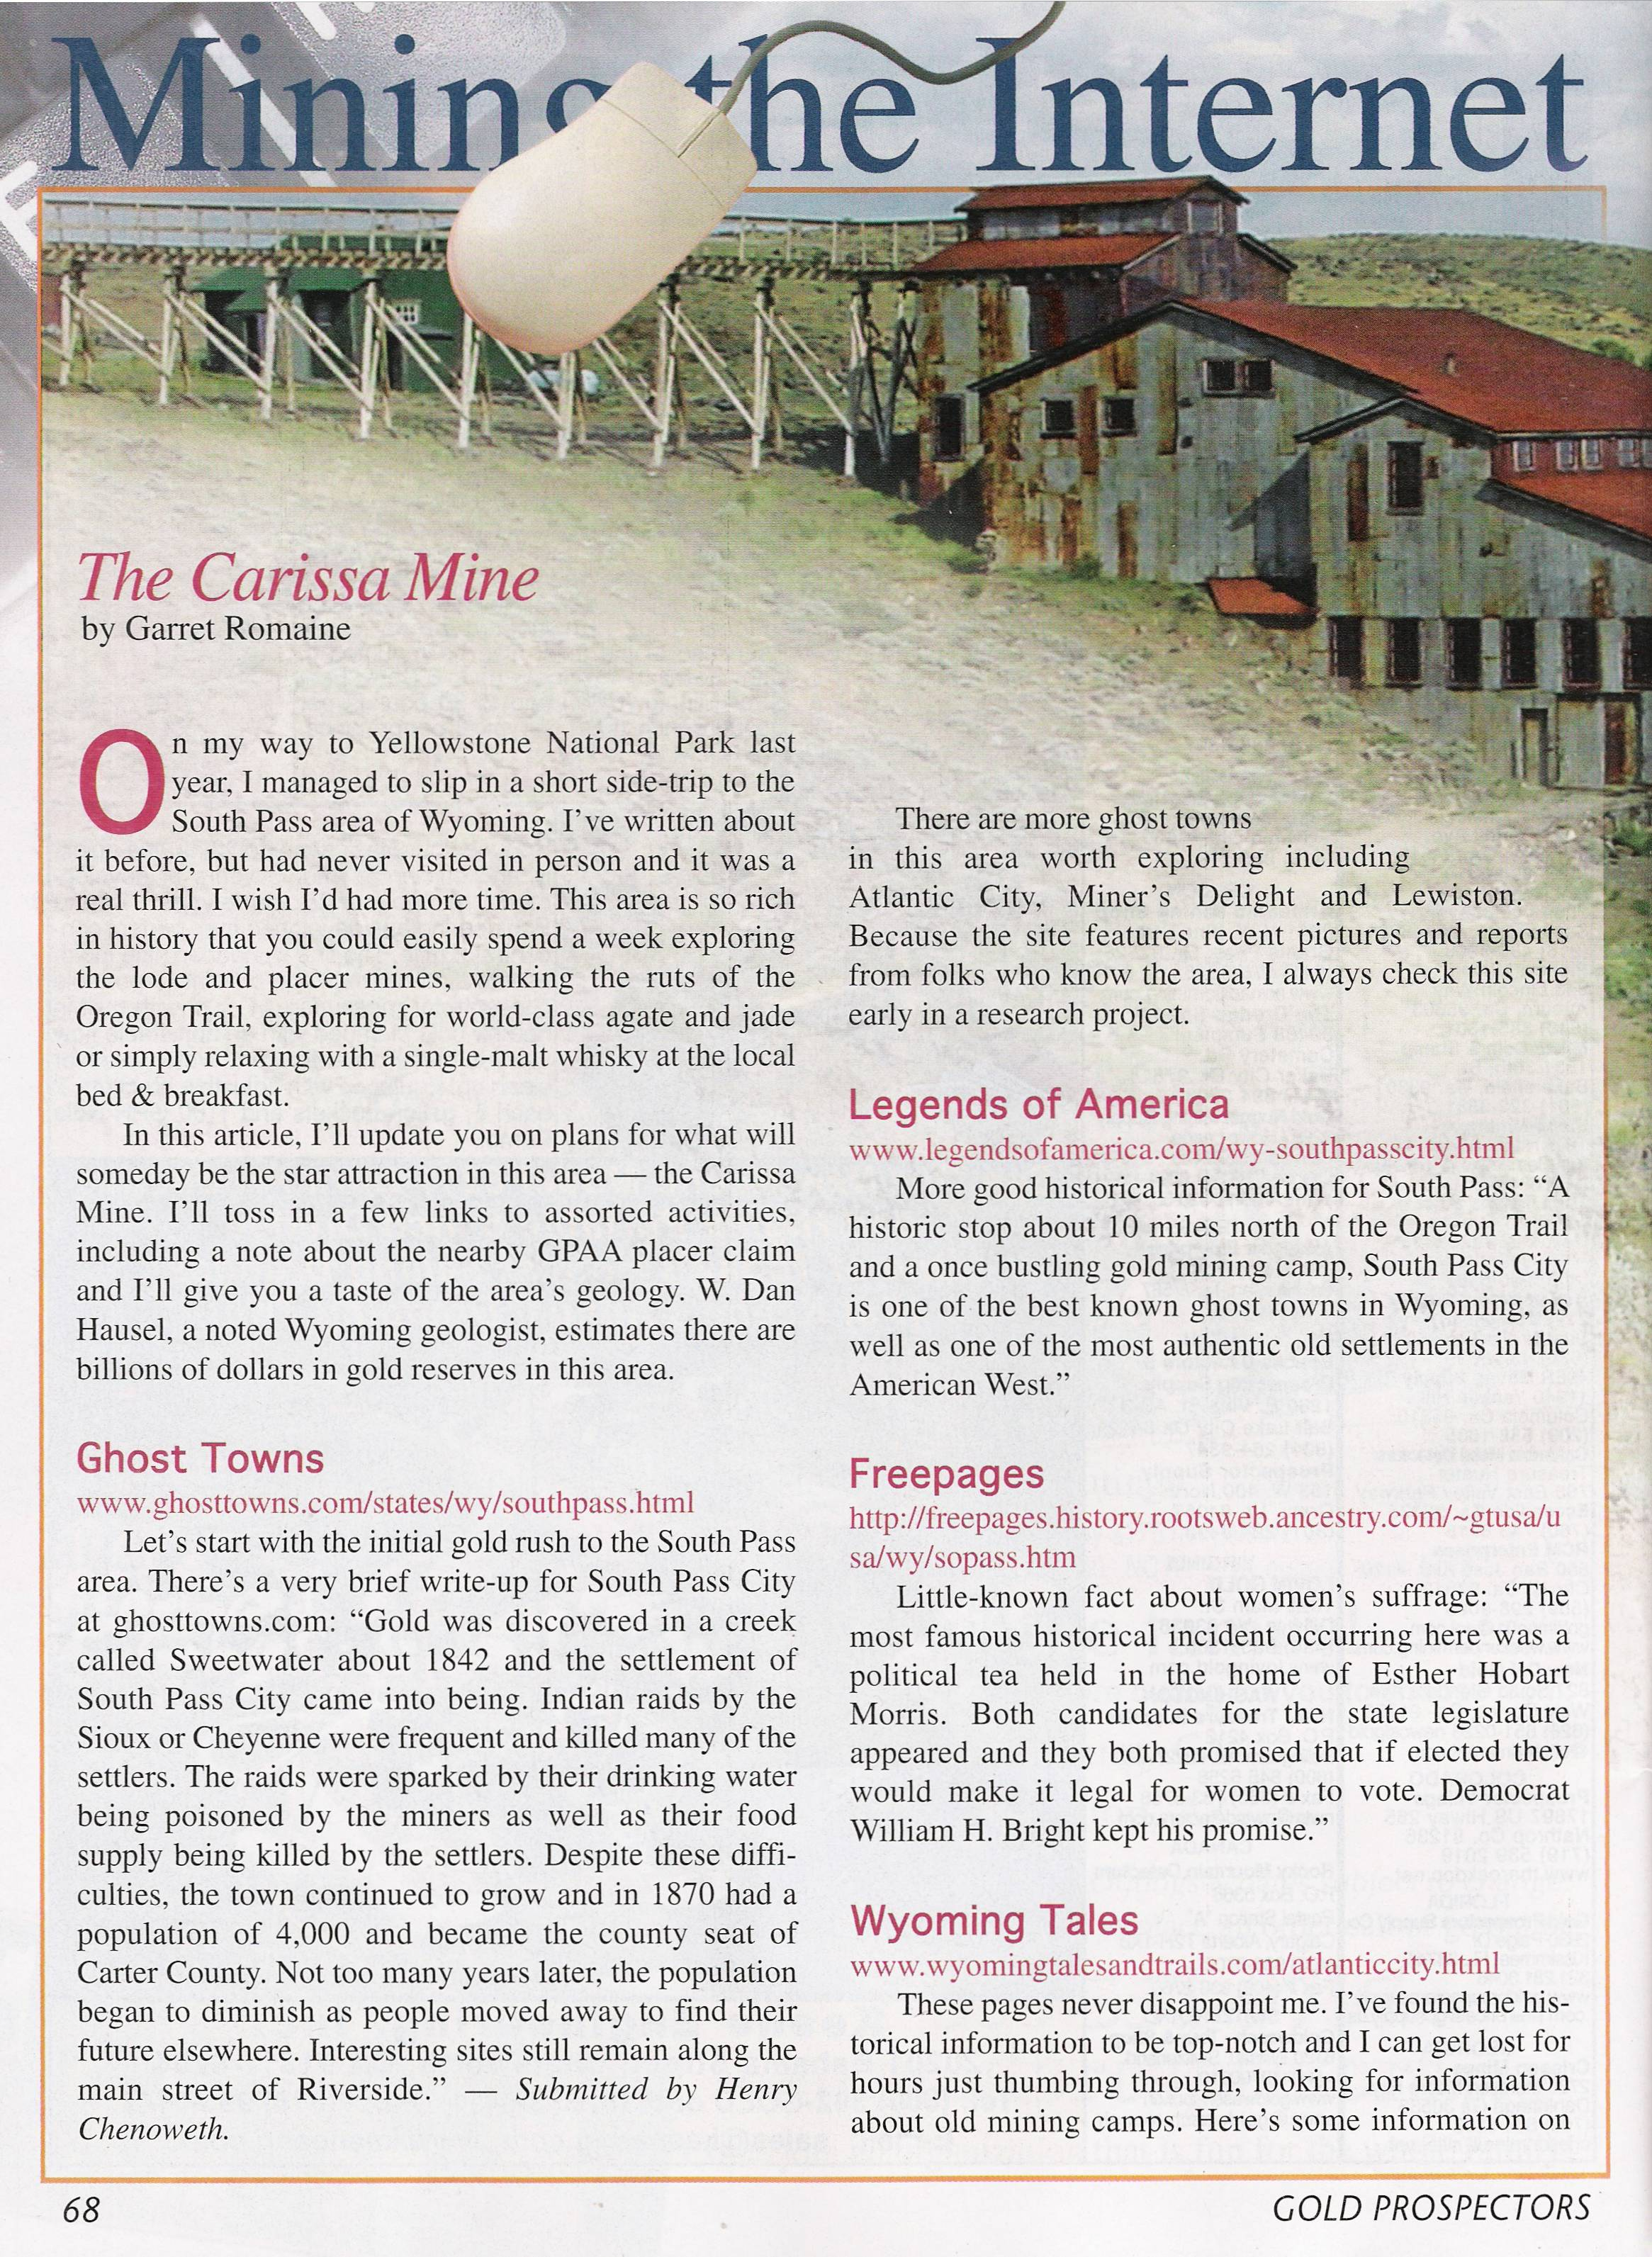 Gold Prospector Magazine Features South Pass City and the Carissa Mine, WY.